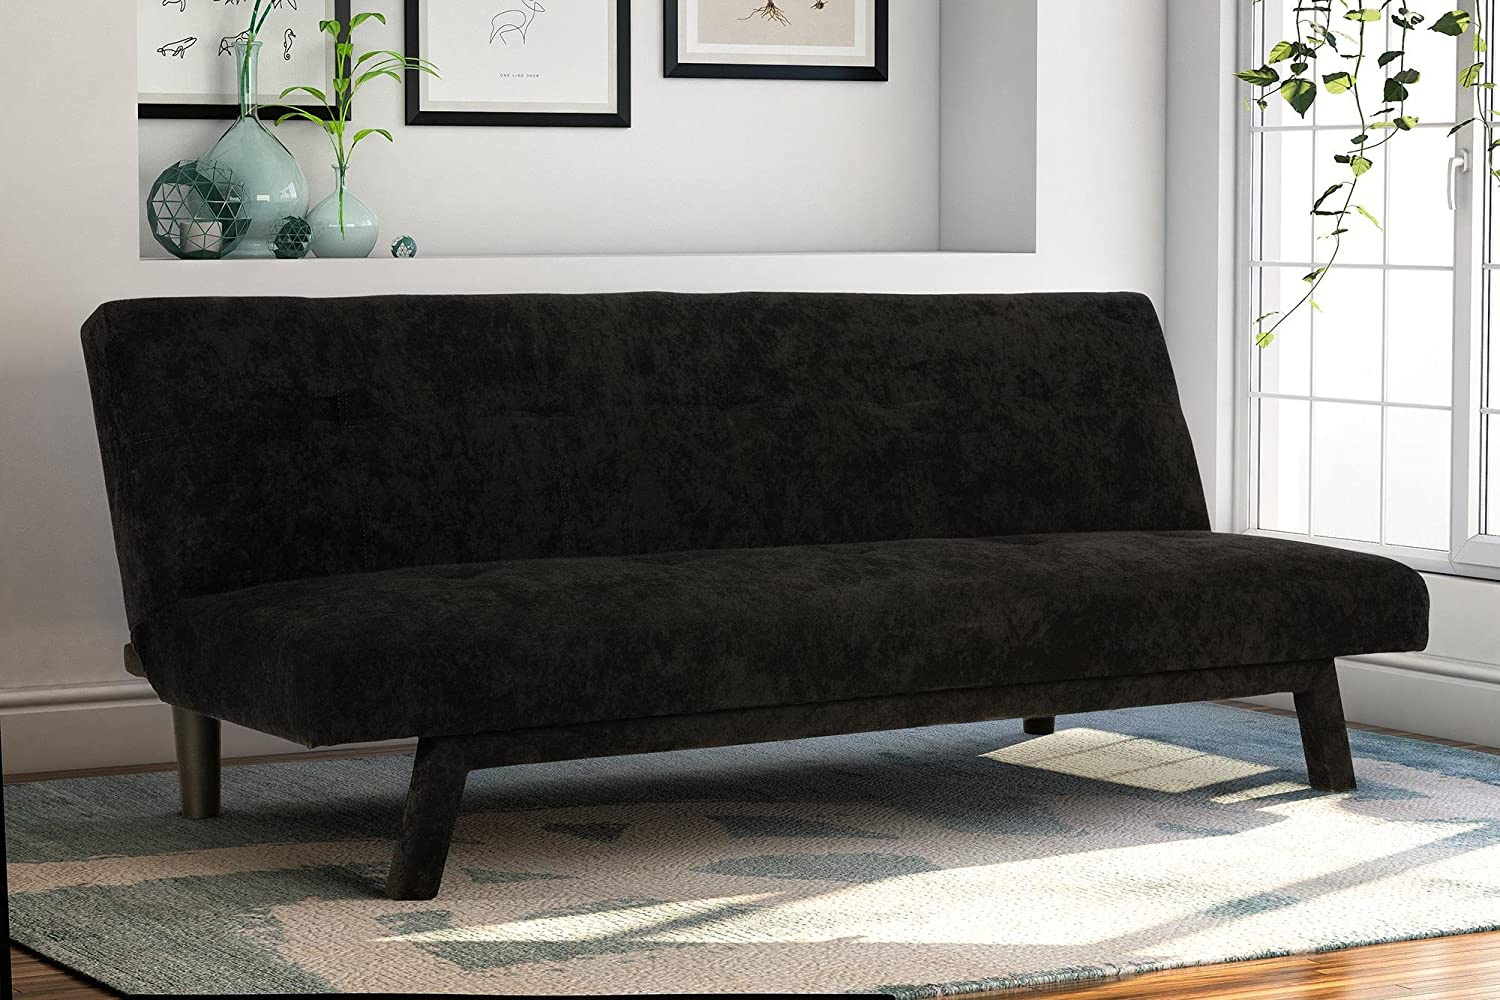 Amazon.com: Premium Austin Convertible Sofa Futon, Rich Black Microfiber  Couch Bed w/ Upholstered Front Legs, Perfect Small Space Solution, ... - Amazon.com: Premium Austin Convertible Sofa Futon, Rich Black